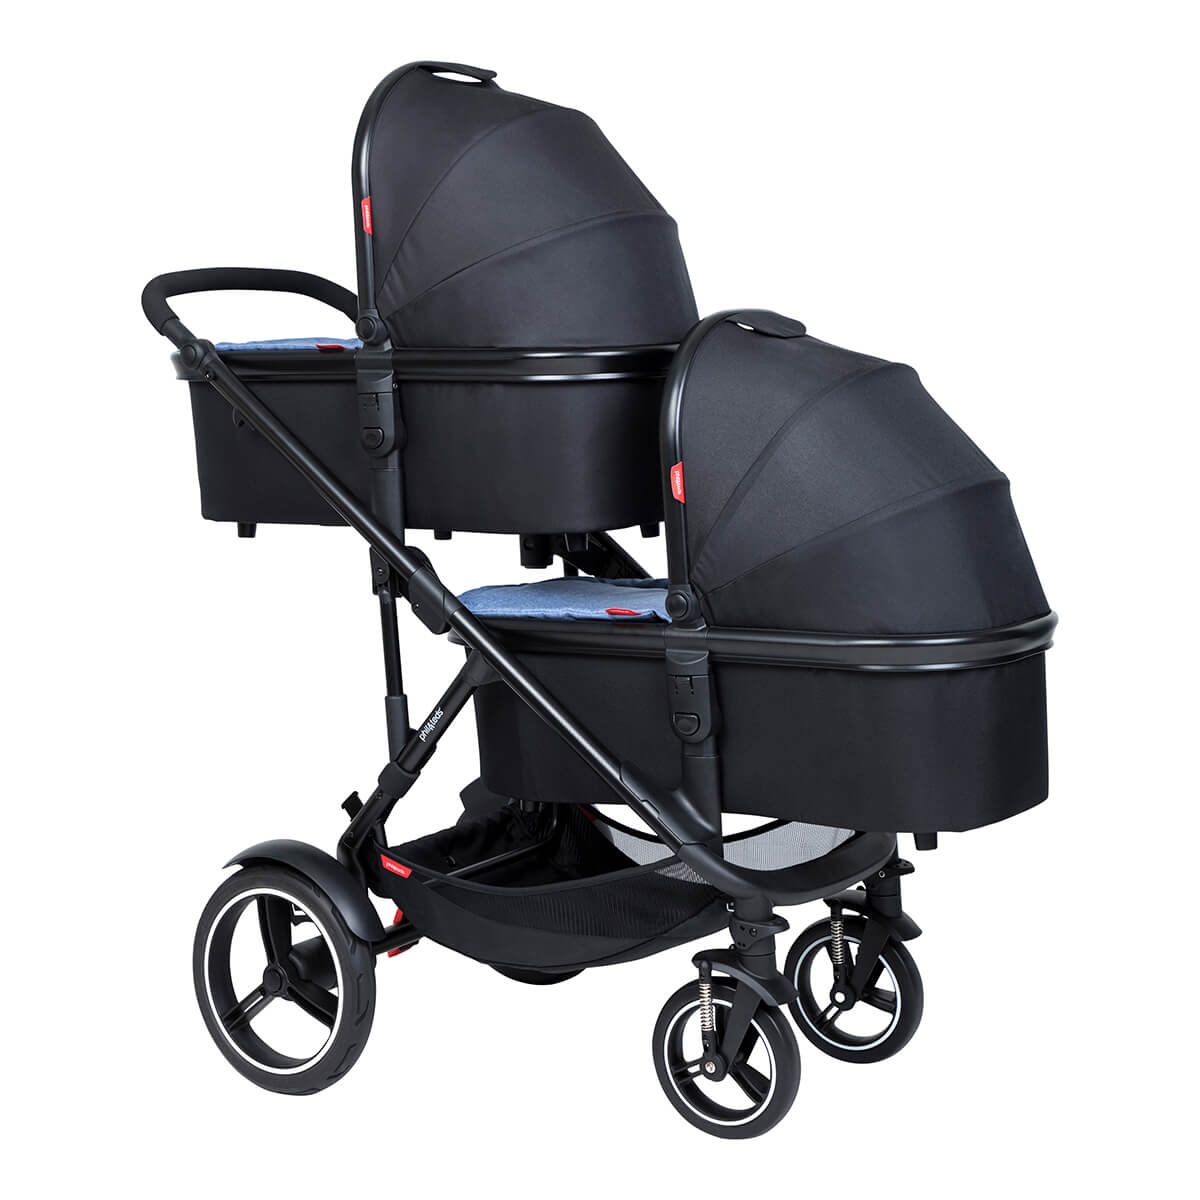 https://cdn.accentuate.io/4509910794317/19466204610754/philteds-voyager-inline-buggy-with-double-snug-carrycots-v1626485520964.jpg?1200x1200